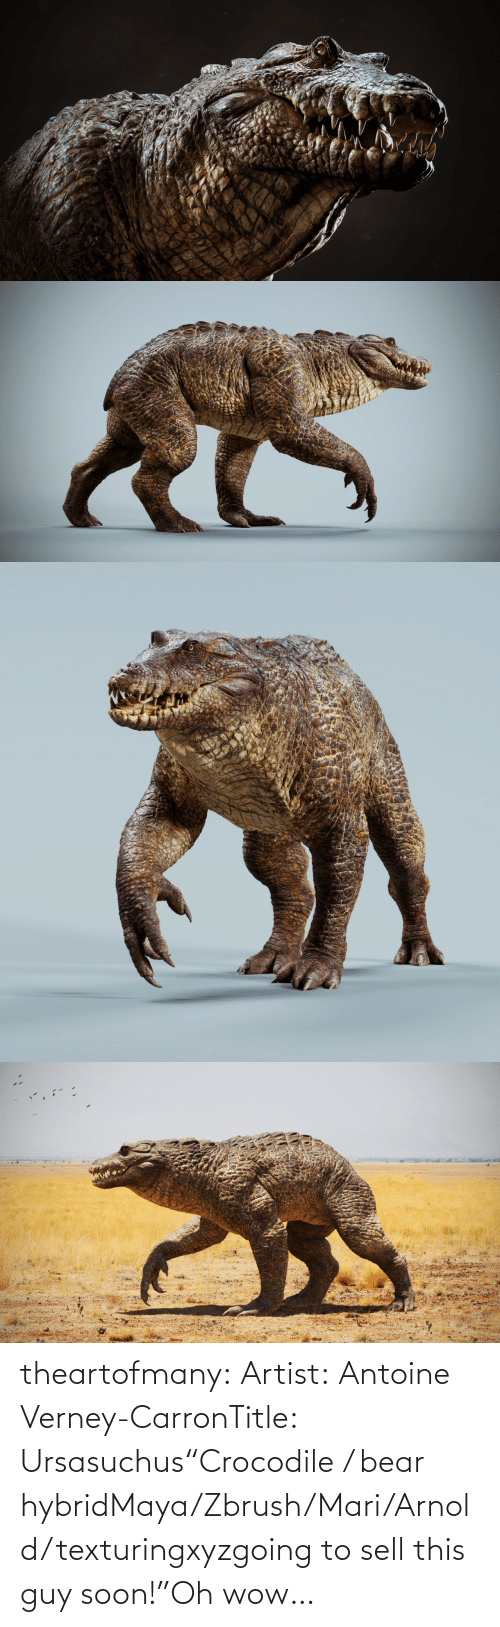 "this guy: theartofmany:  Artist:  Antoine Verney-CarronTitle:  Ursasuchus""Crocodile / bear hybridMaya/Zbrush/Mari/Arnold/texturingxyzgoing to sell this guy soon!""Oh wow…"